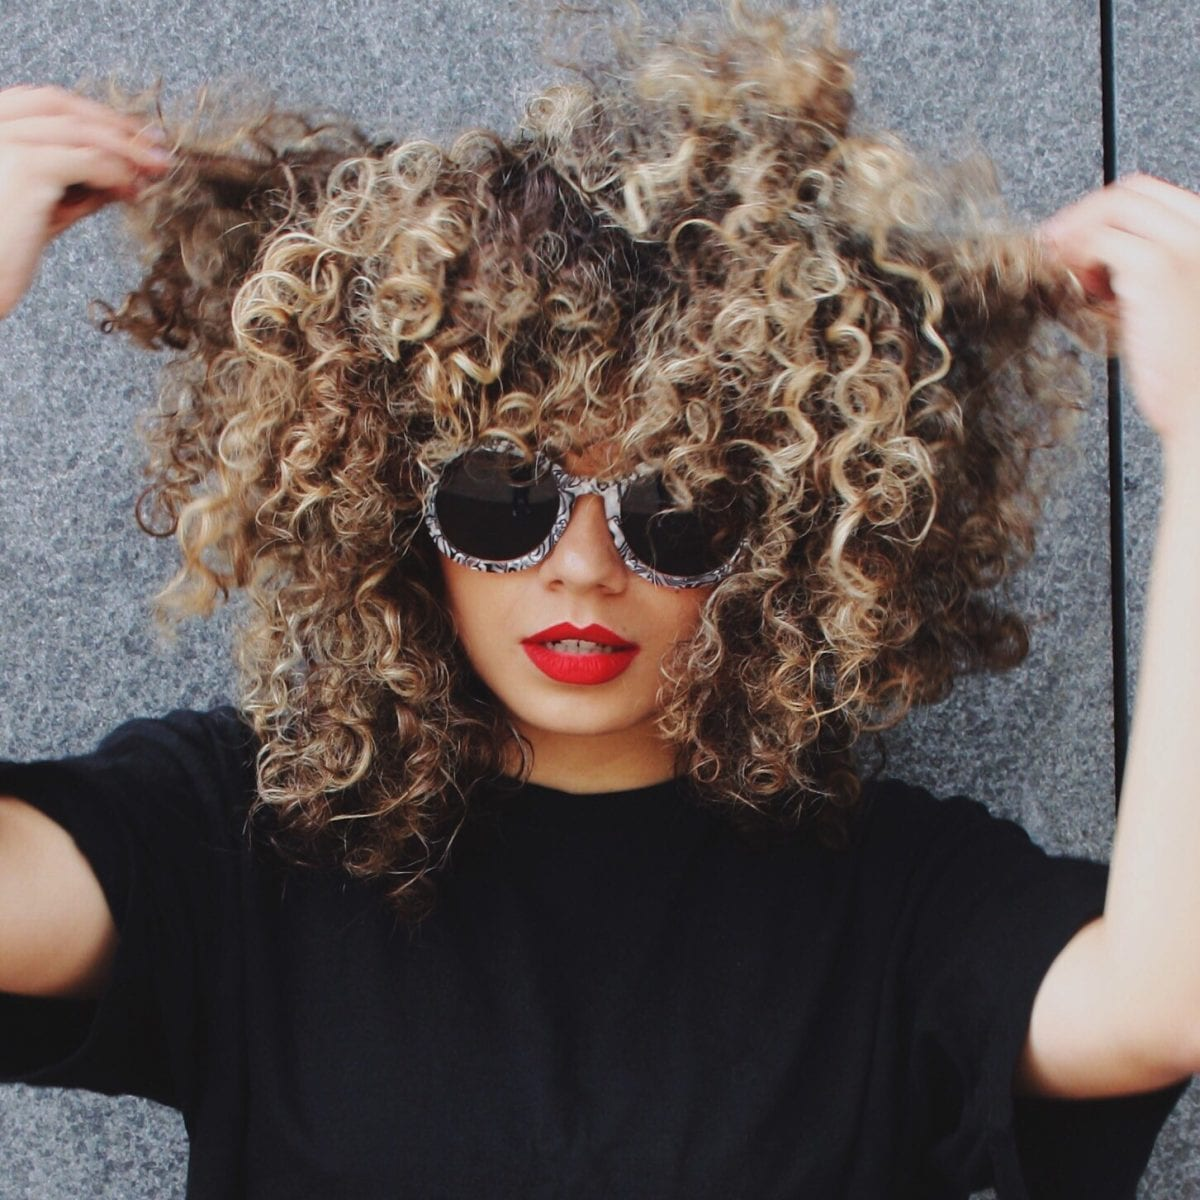 all about the curls!